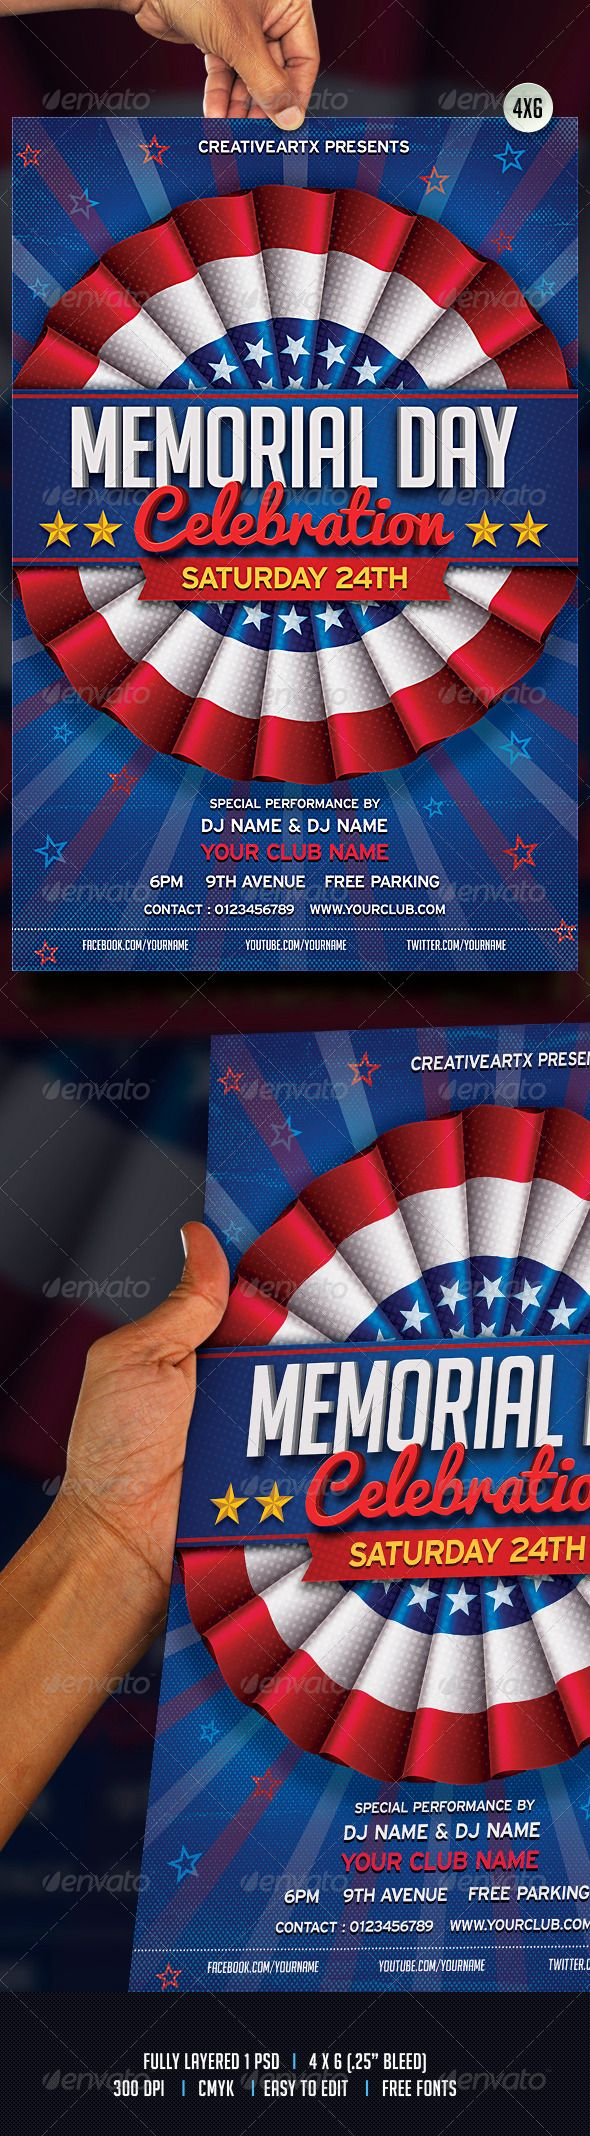 memorial day club party themes